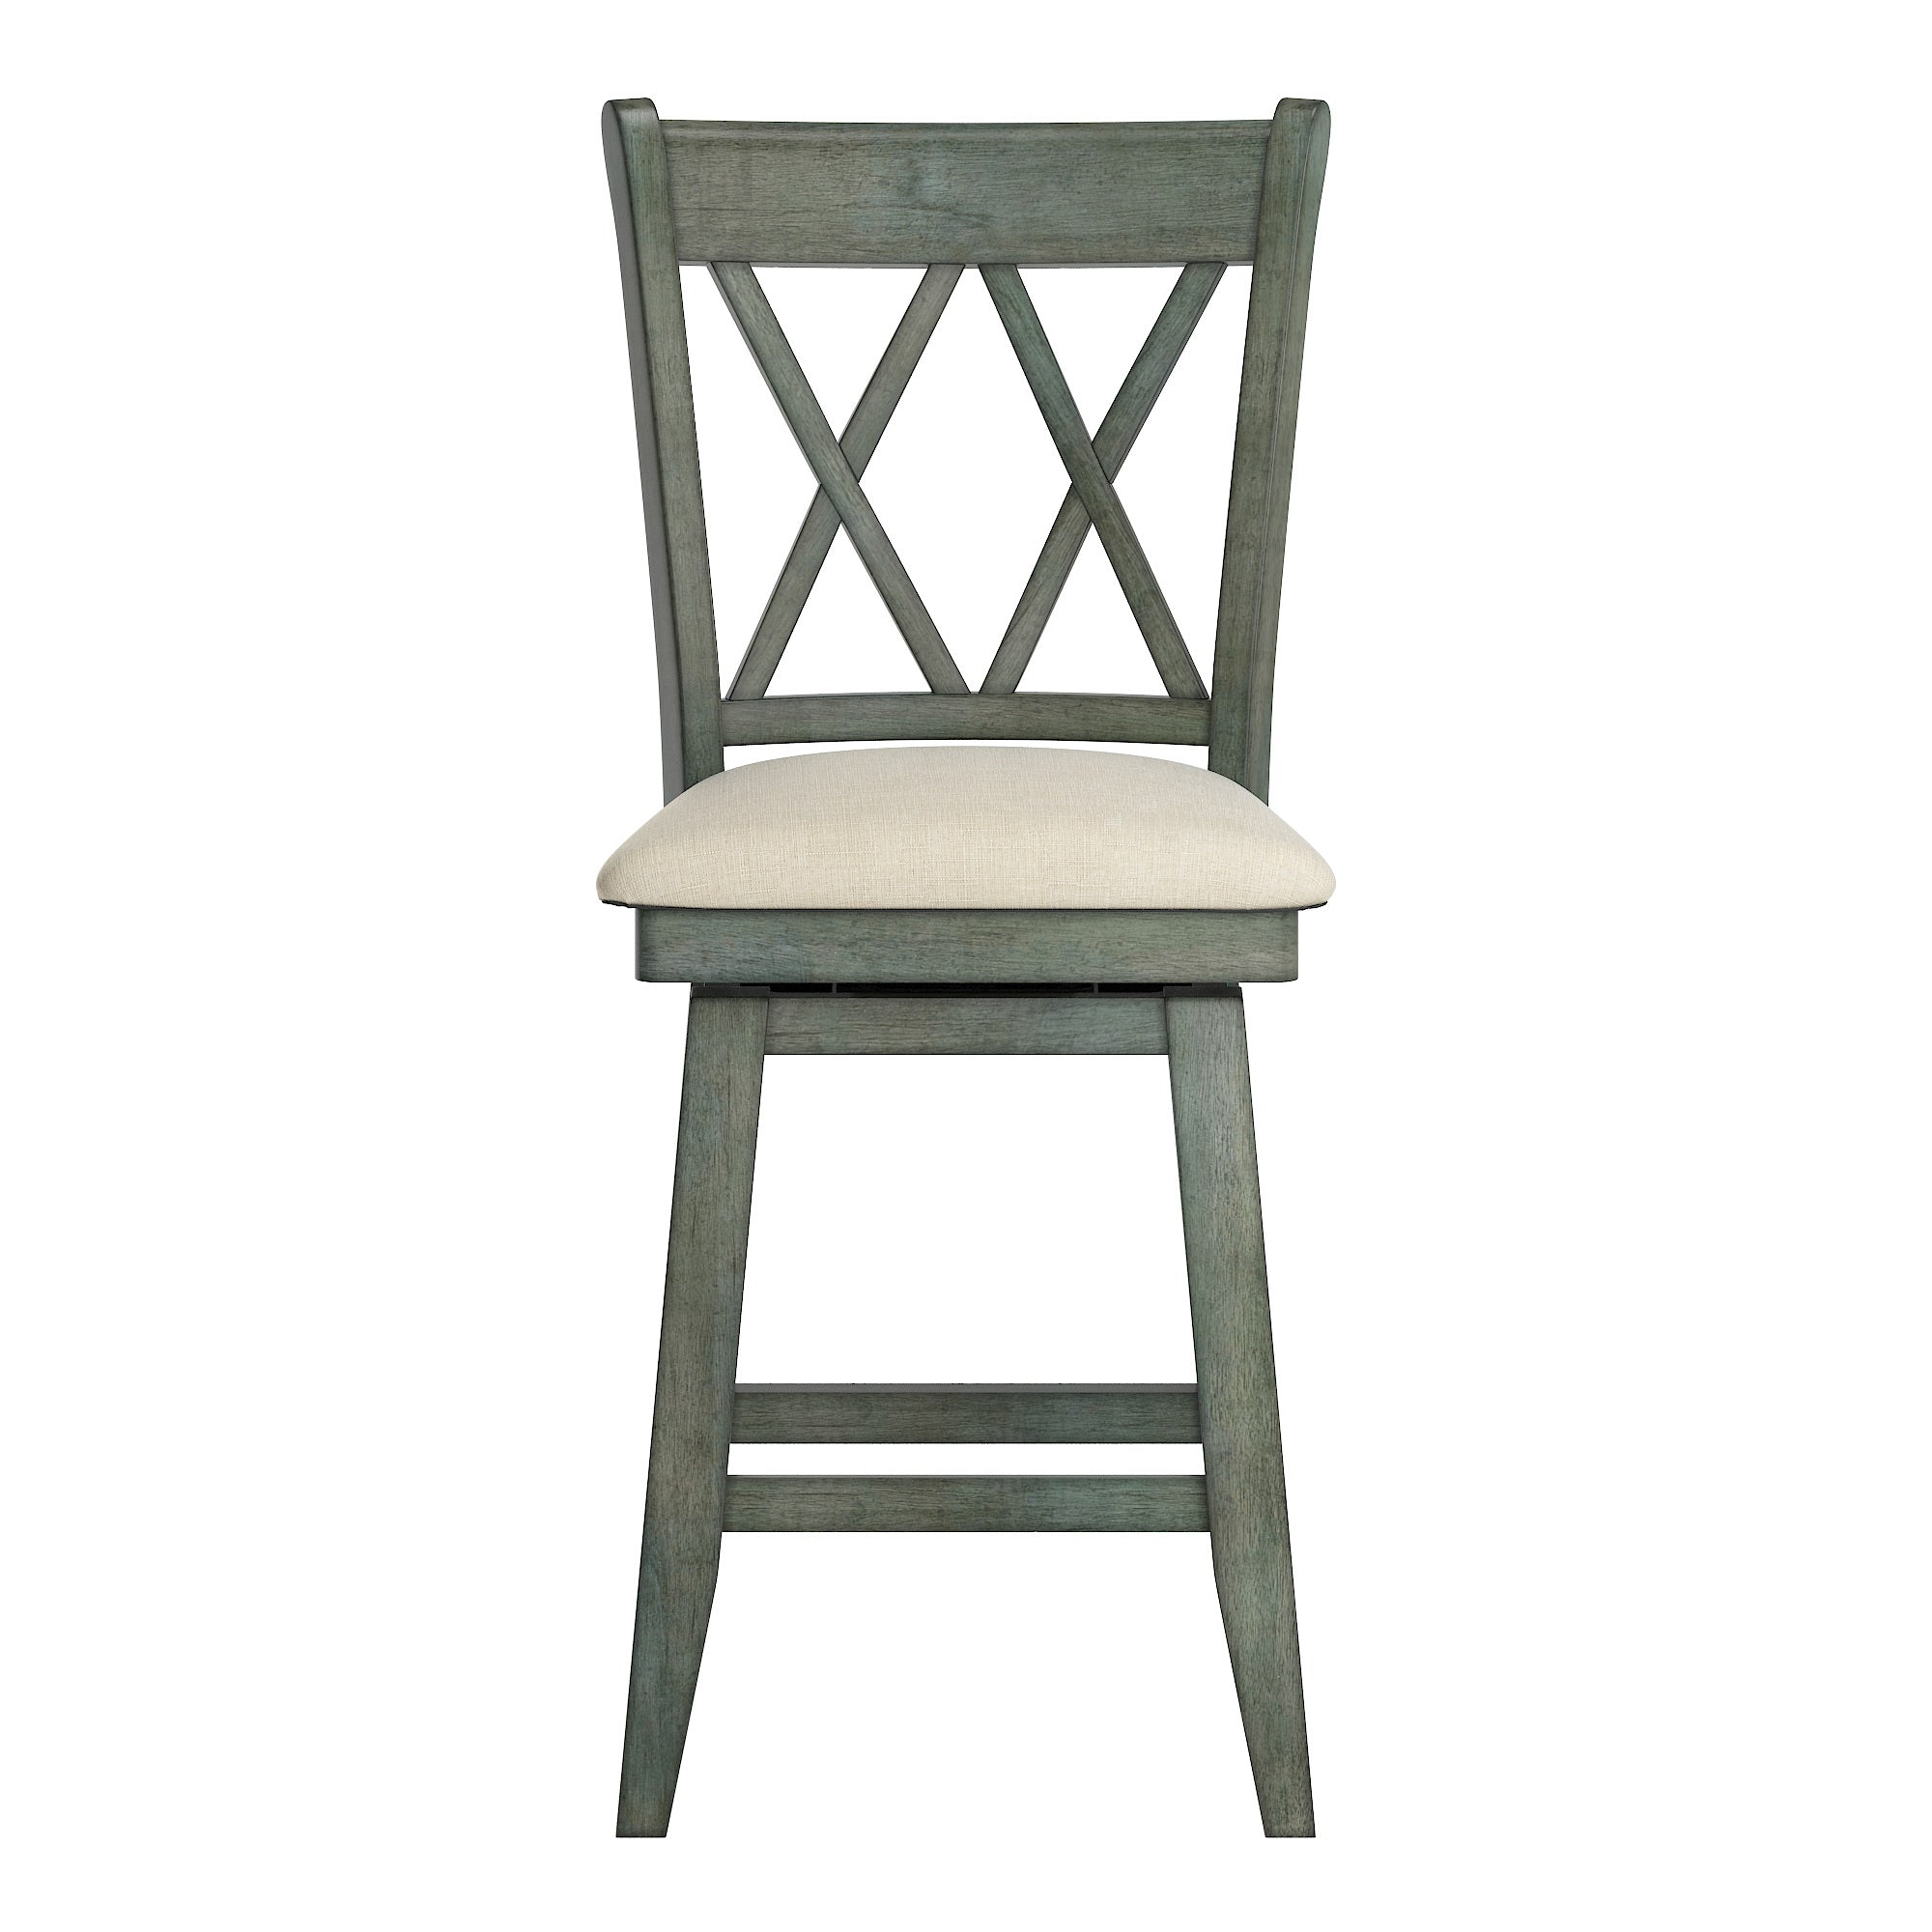 Double X Back Counter Height Wood Swivel Chair - Antique Sage